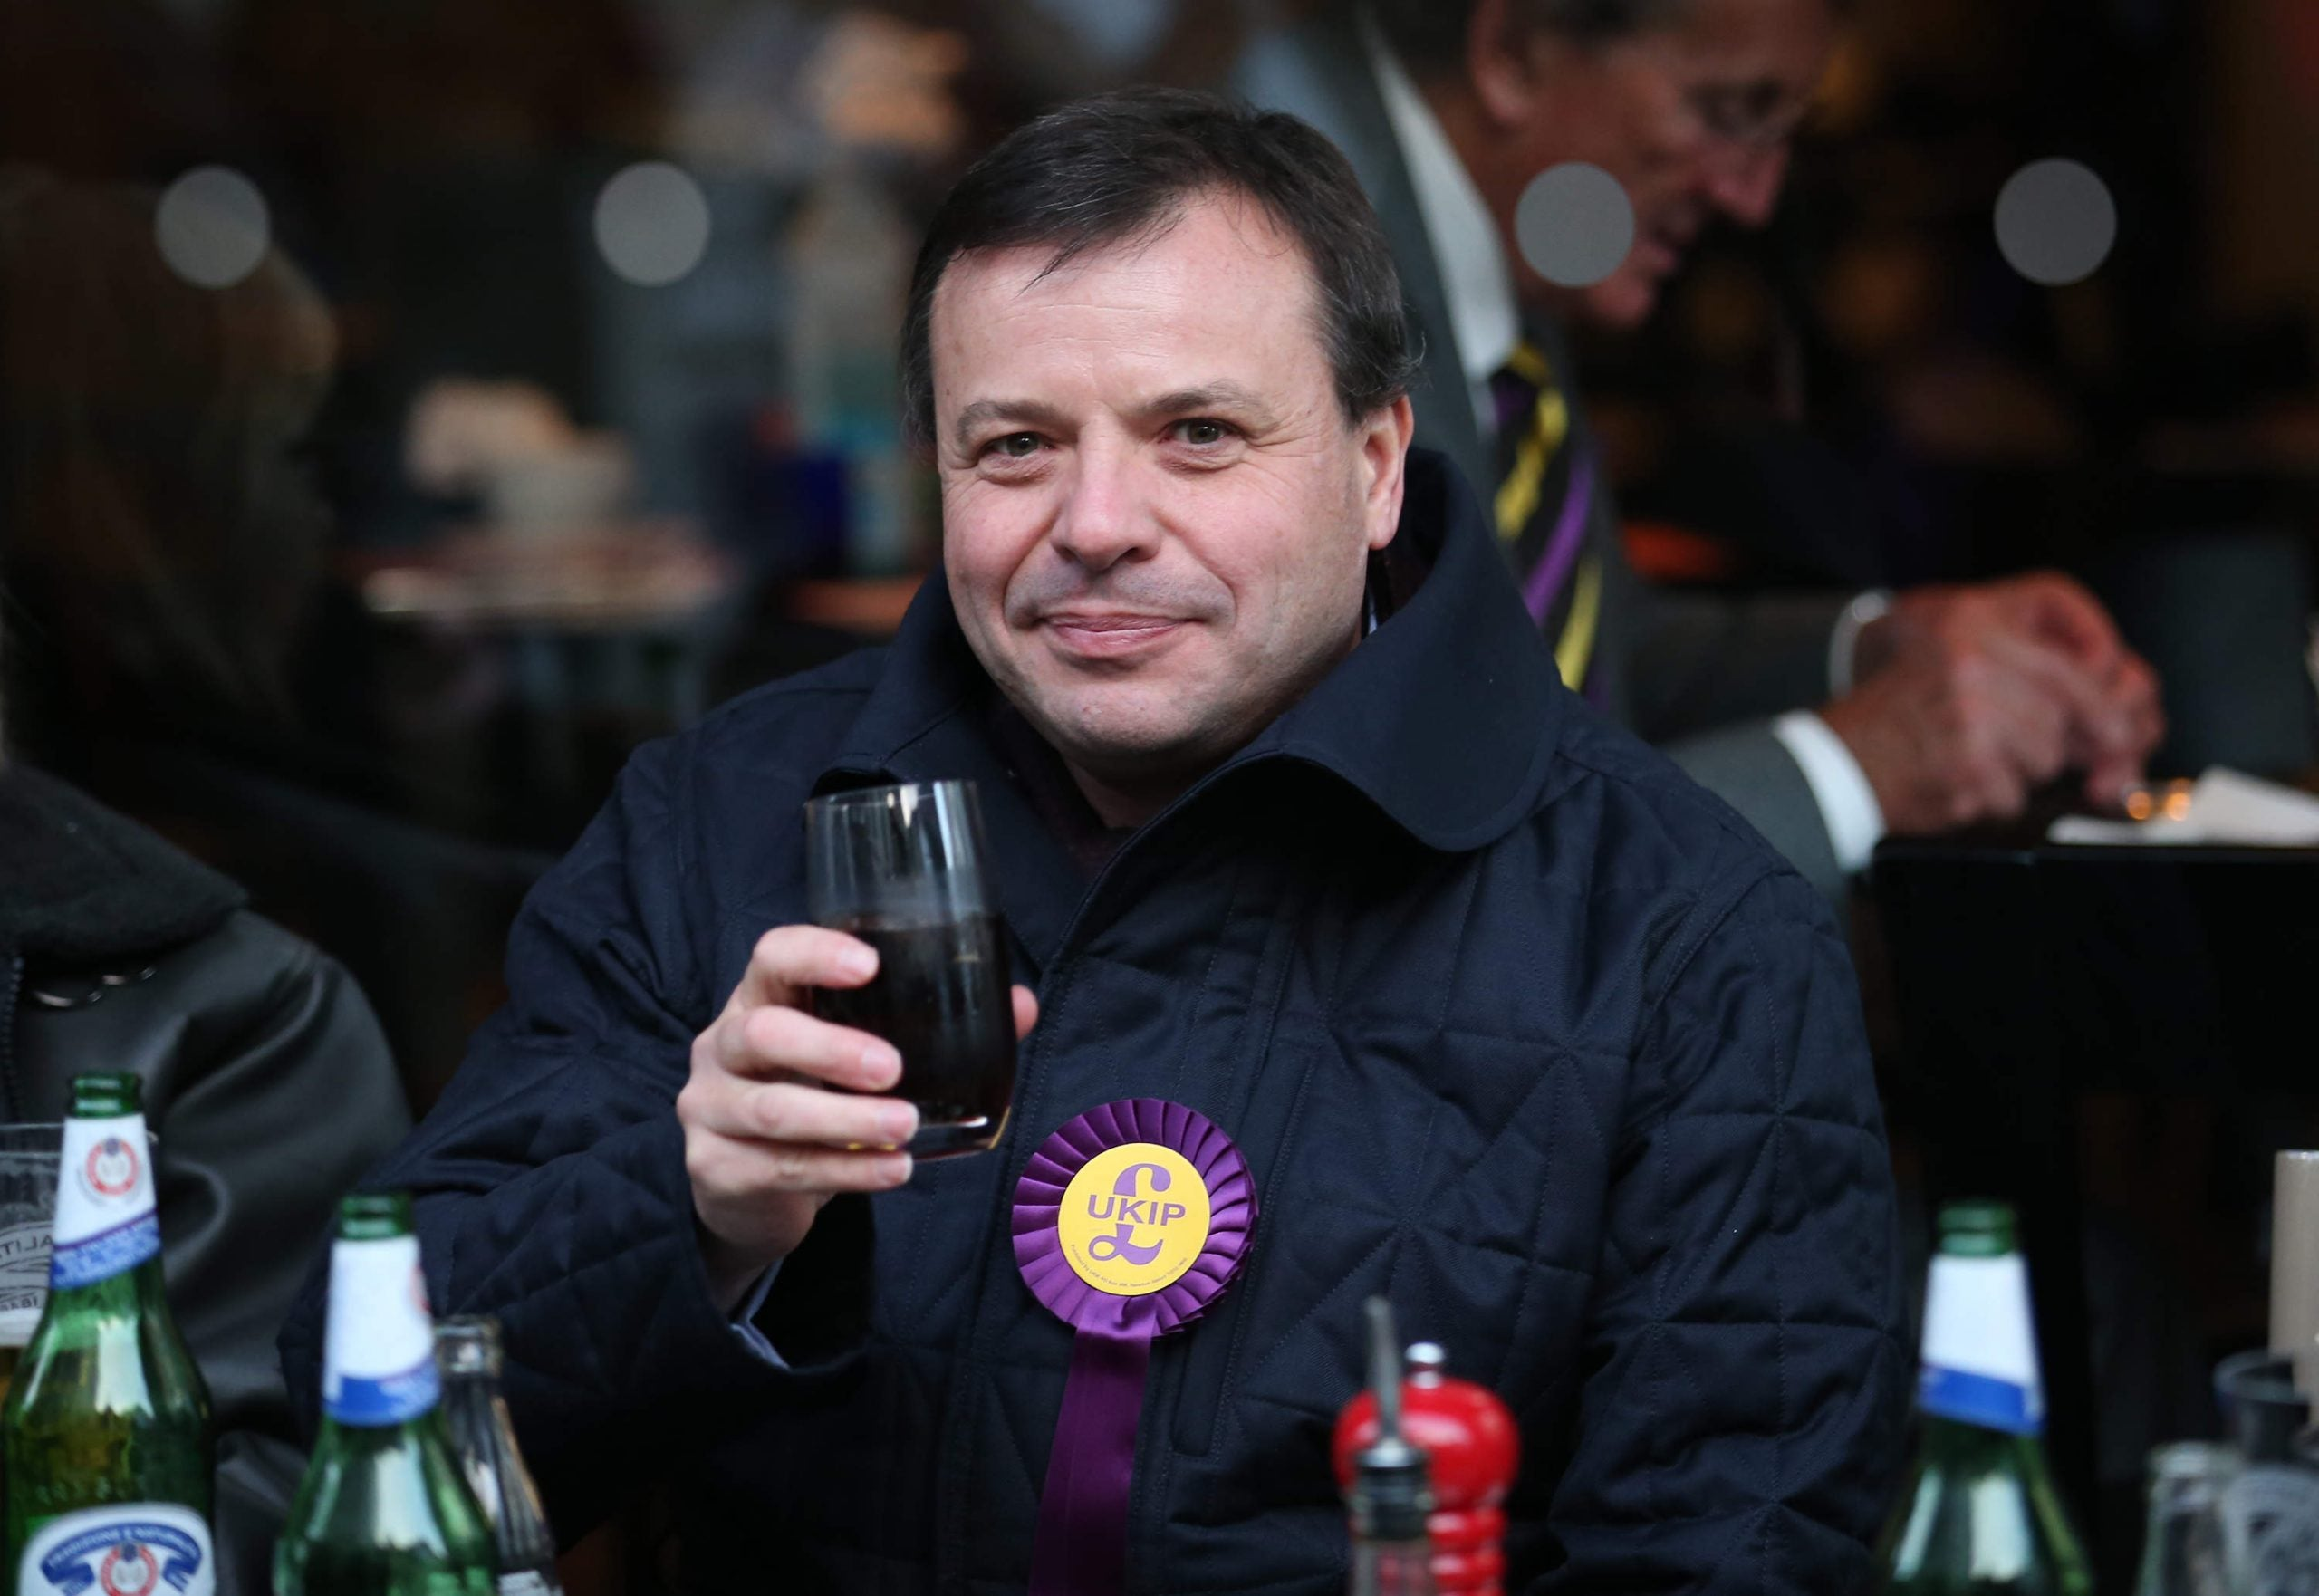 Ukip donor Arron Banks wants to fund a new political party – how would it work?